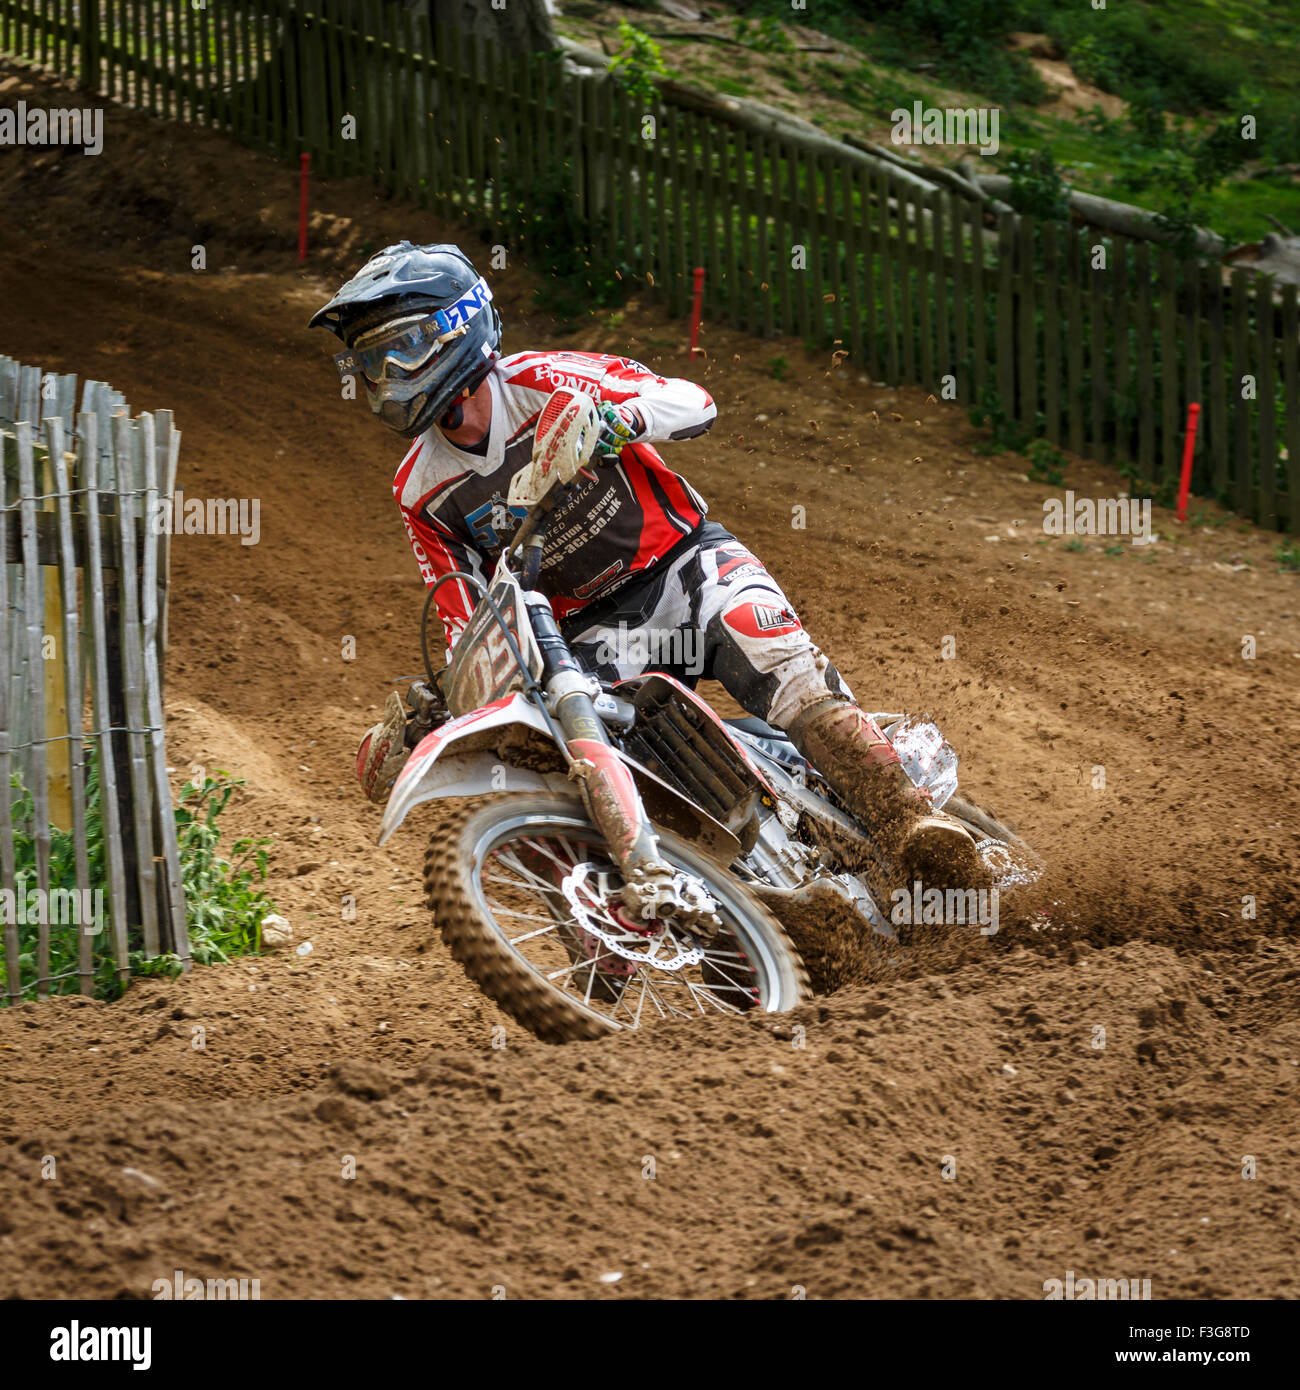 Simon Daniels On His Honda 250 At The 2015 Eastern Centre Acu Solo Dirt Bikes 250cc Motocross Championship Cadders Hill Lyng Norfolk Uk